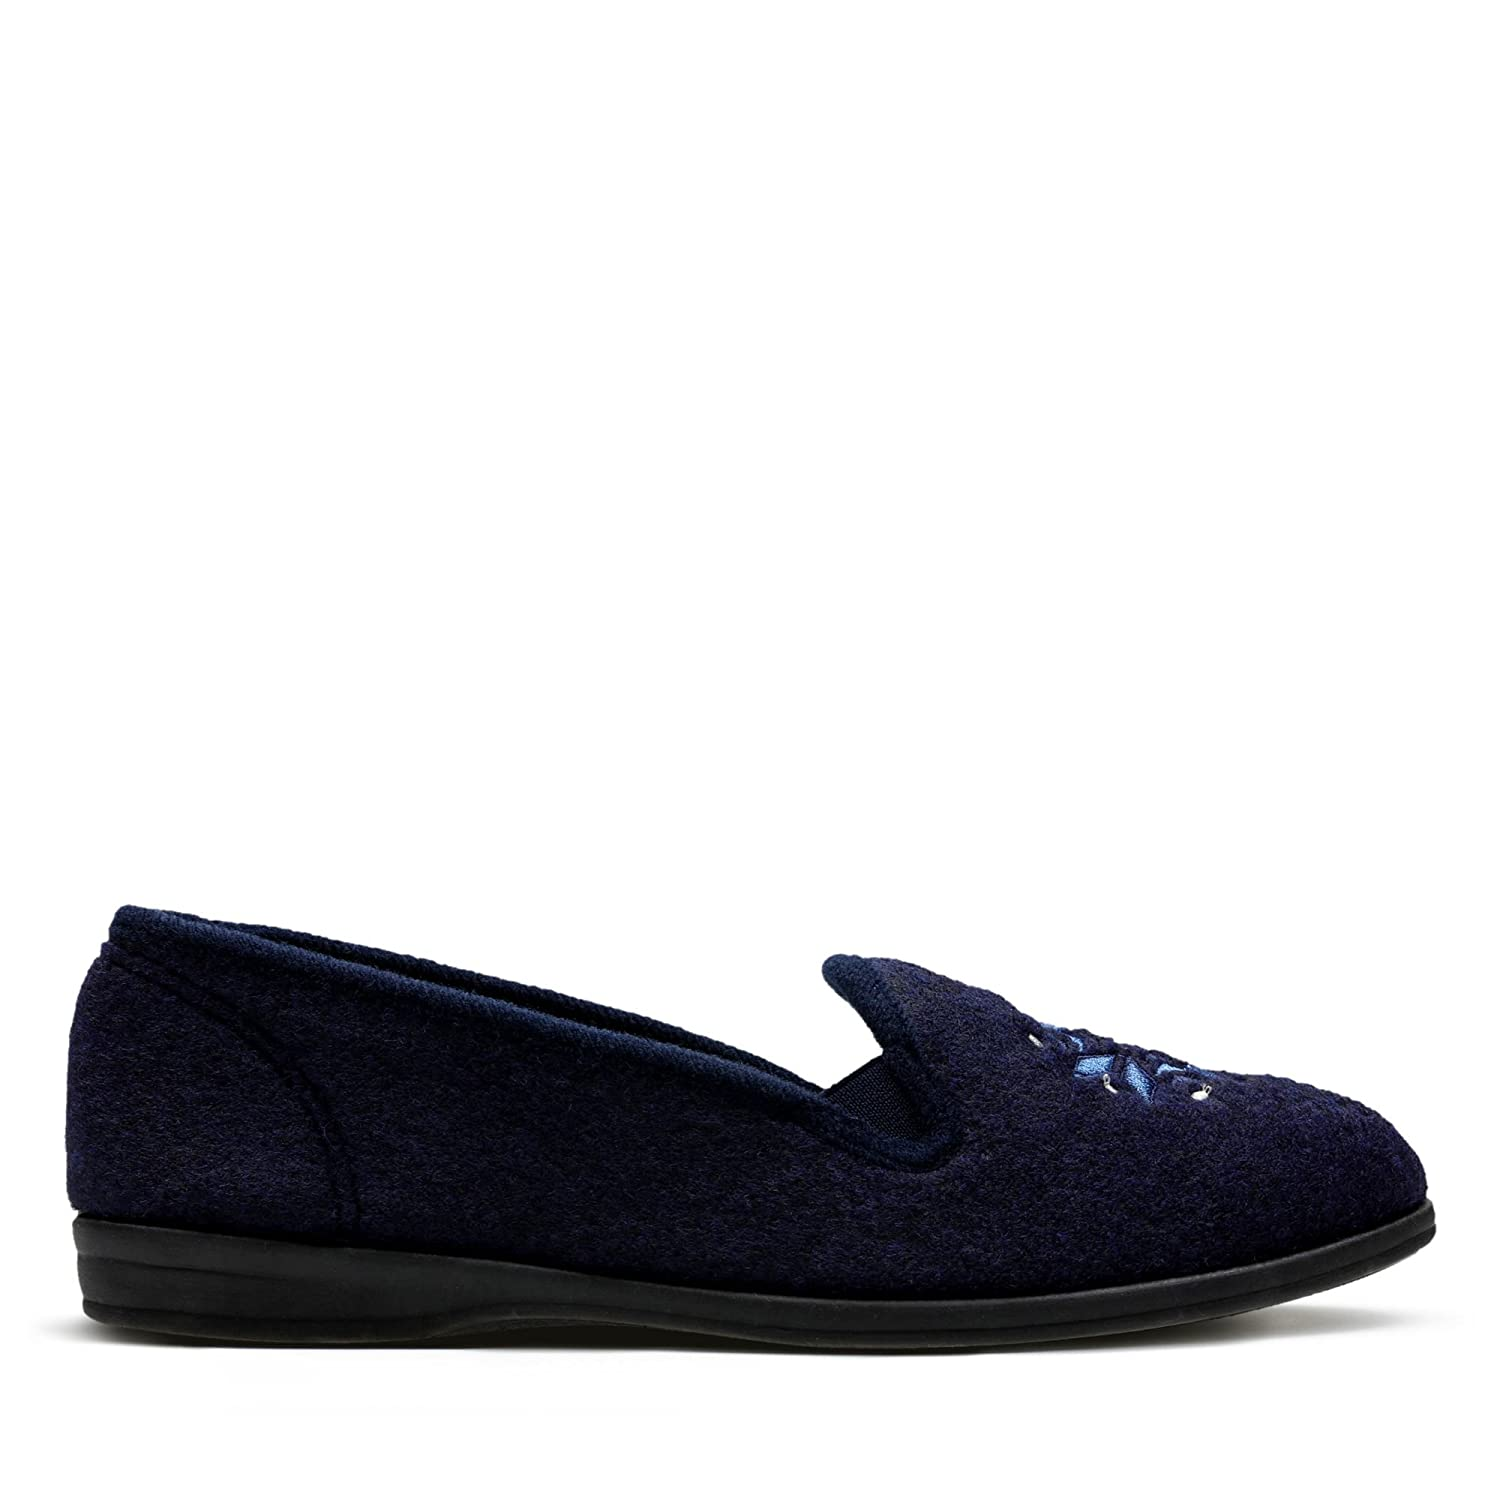 ba2666ab09d Clarks Marsha Rose Textile Slippers in Navy  Amazon.co.uk  Shoes   Bags